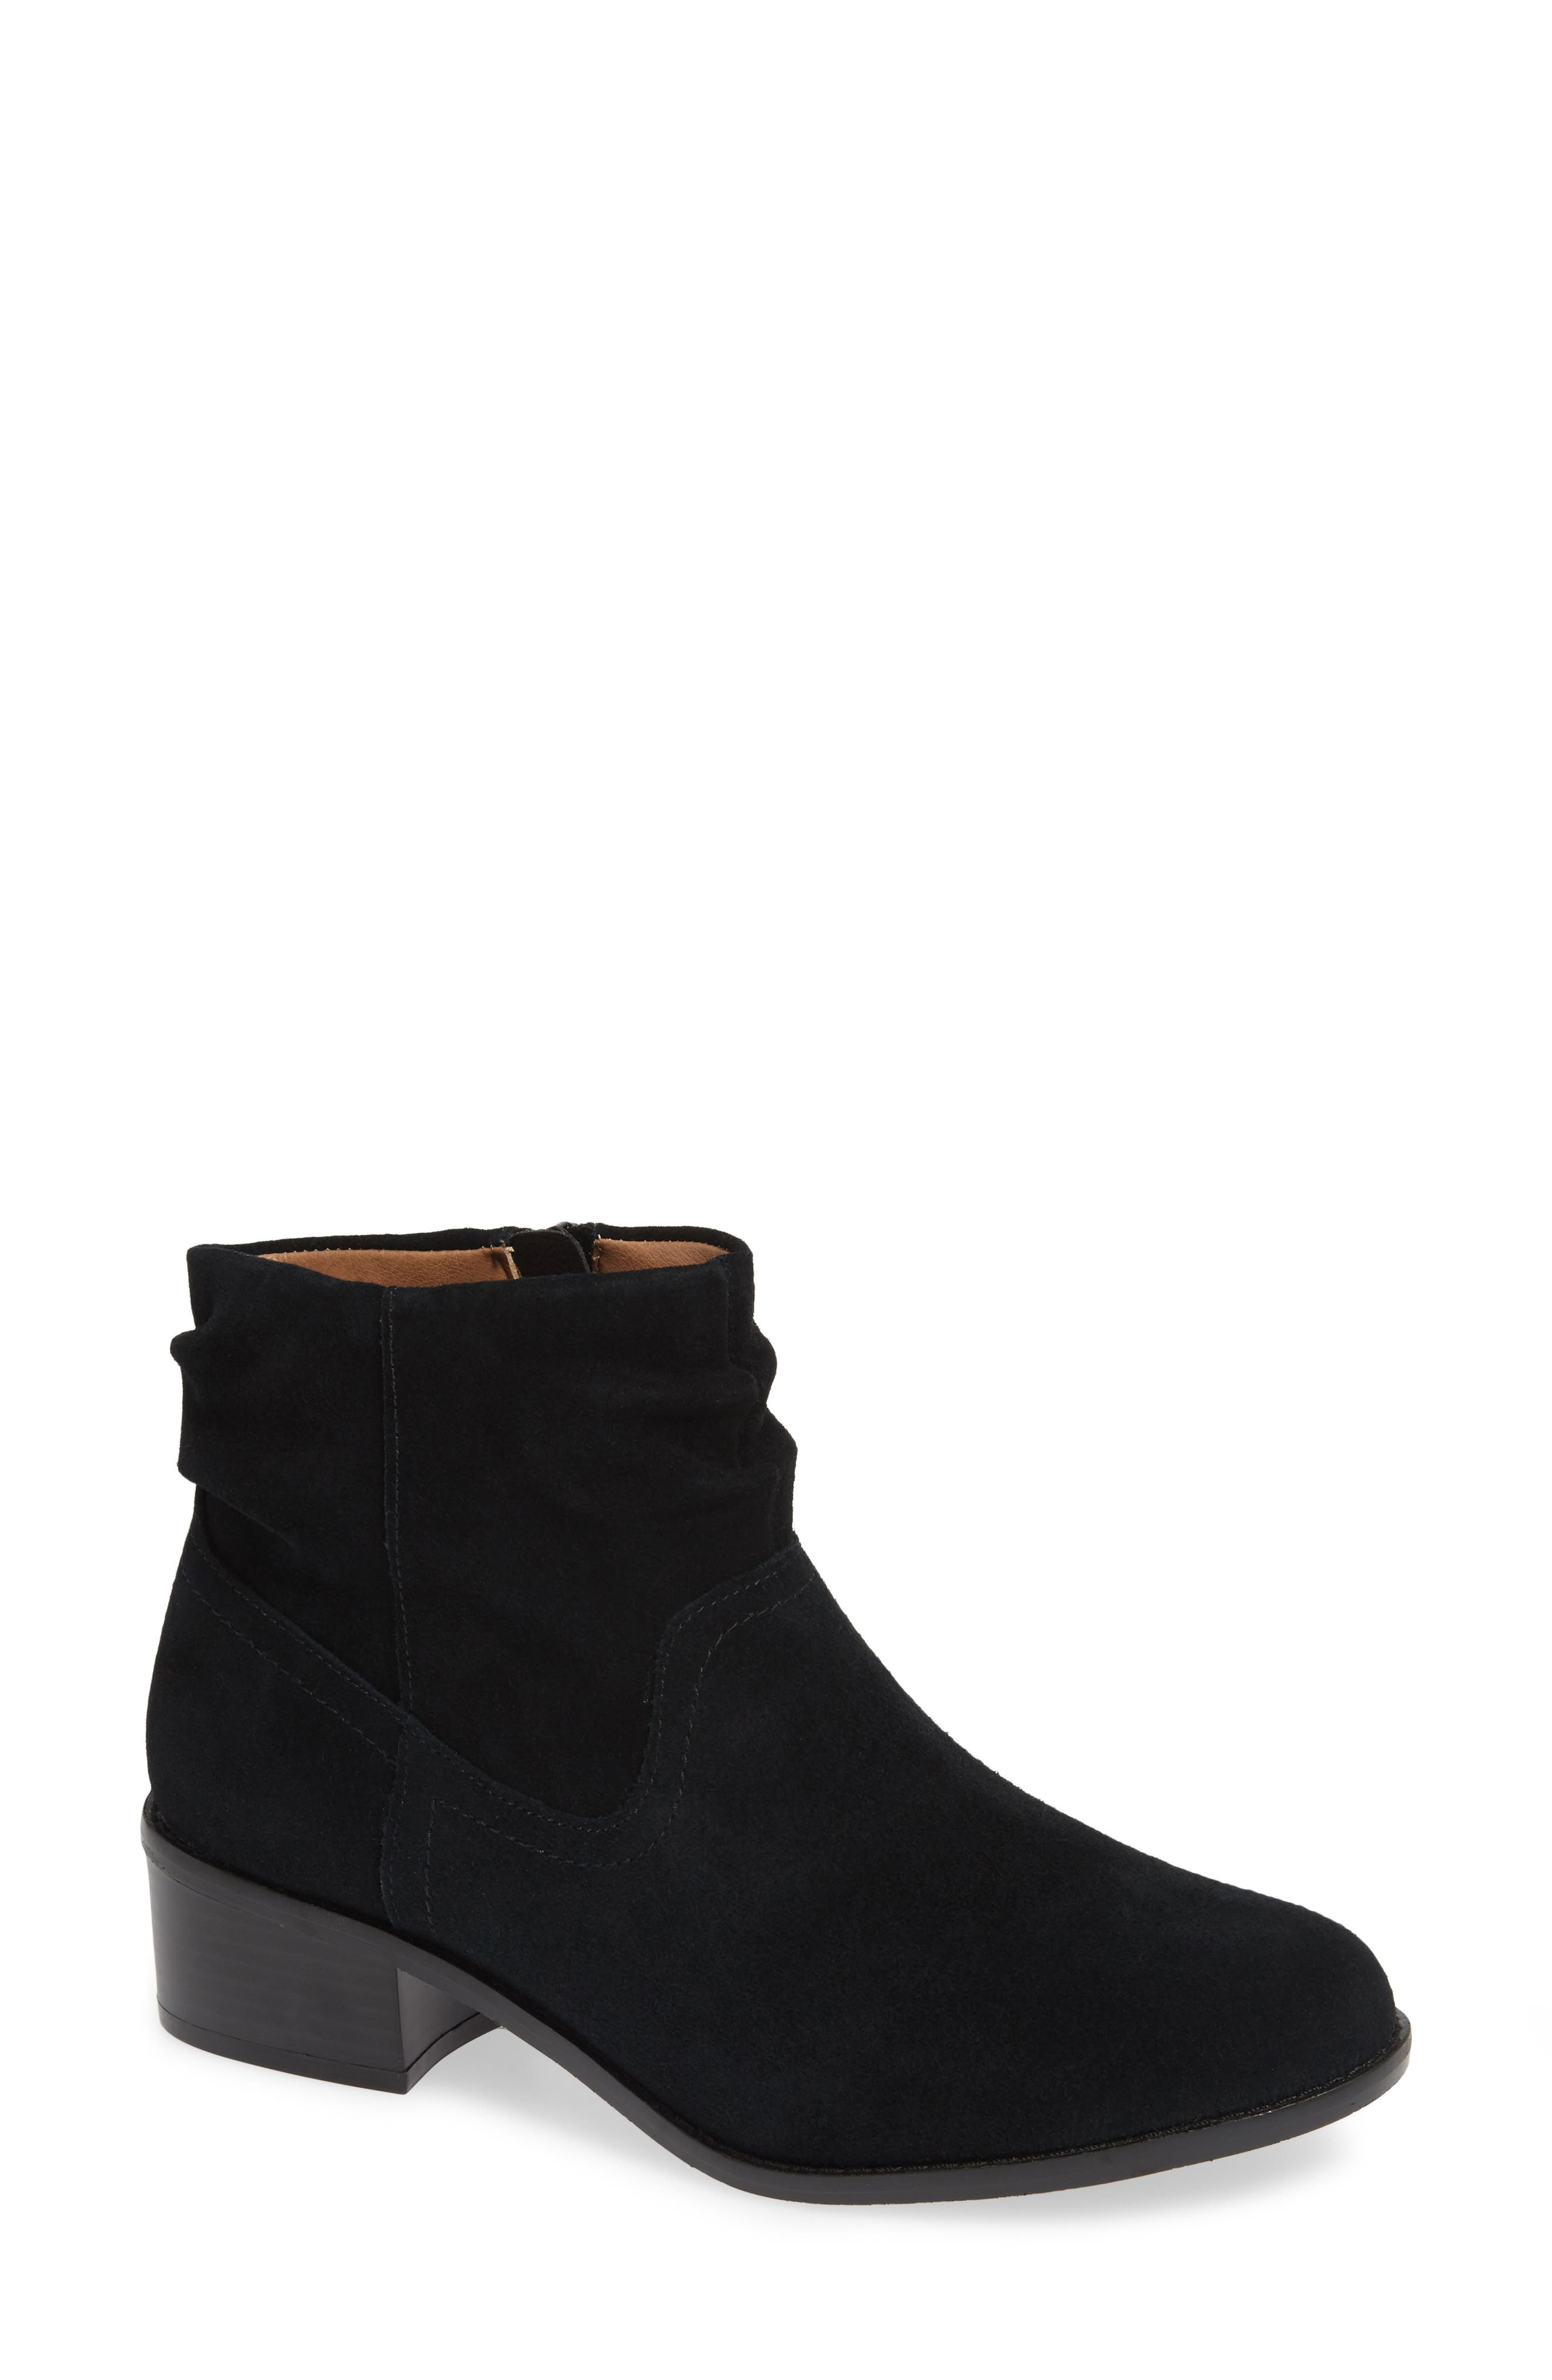 Vionic Kanela Low Slouchy Bootie- Black